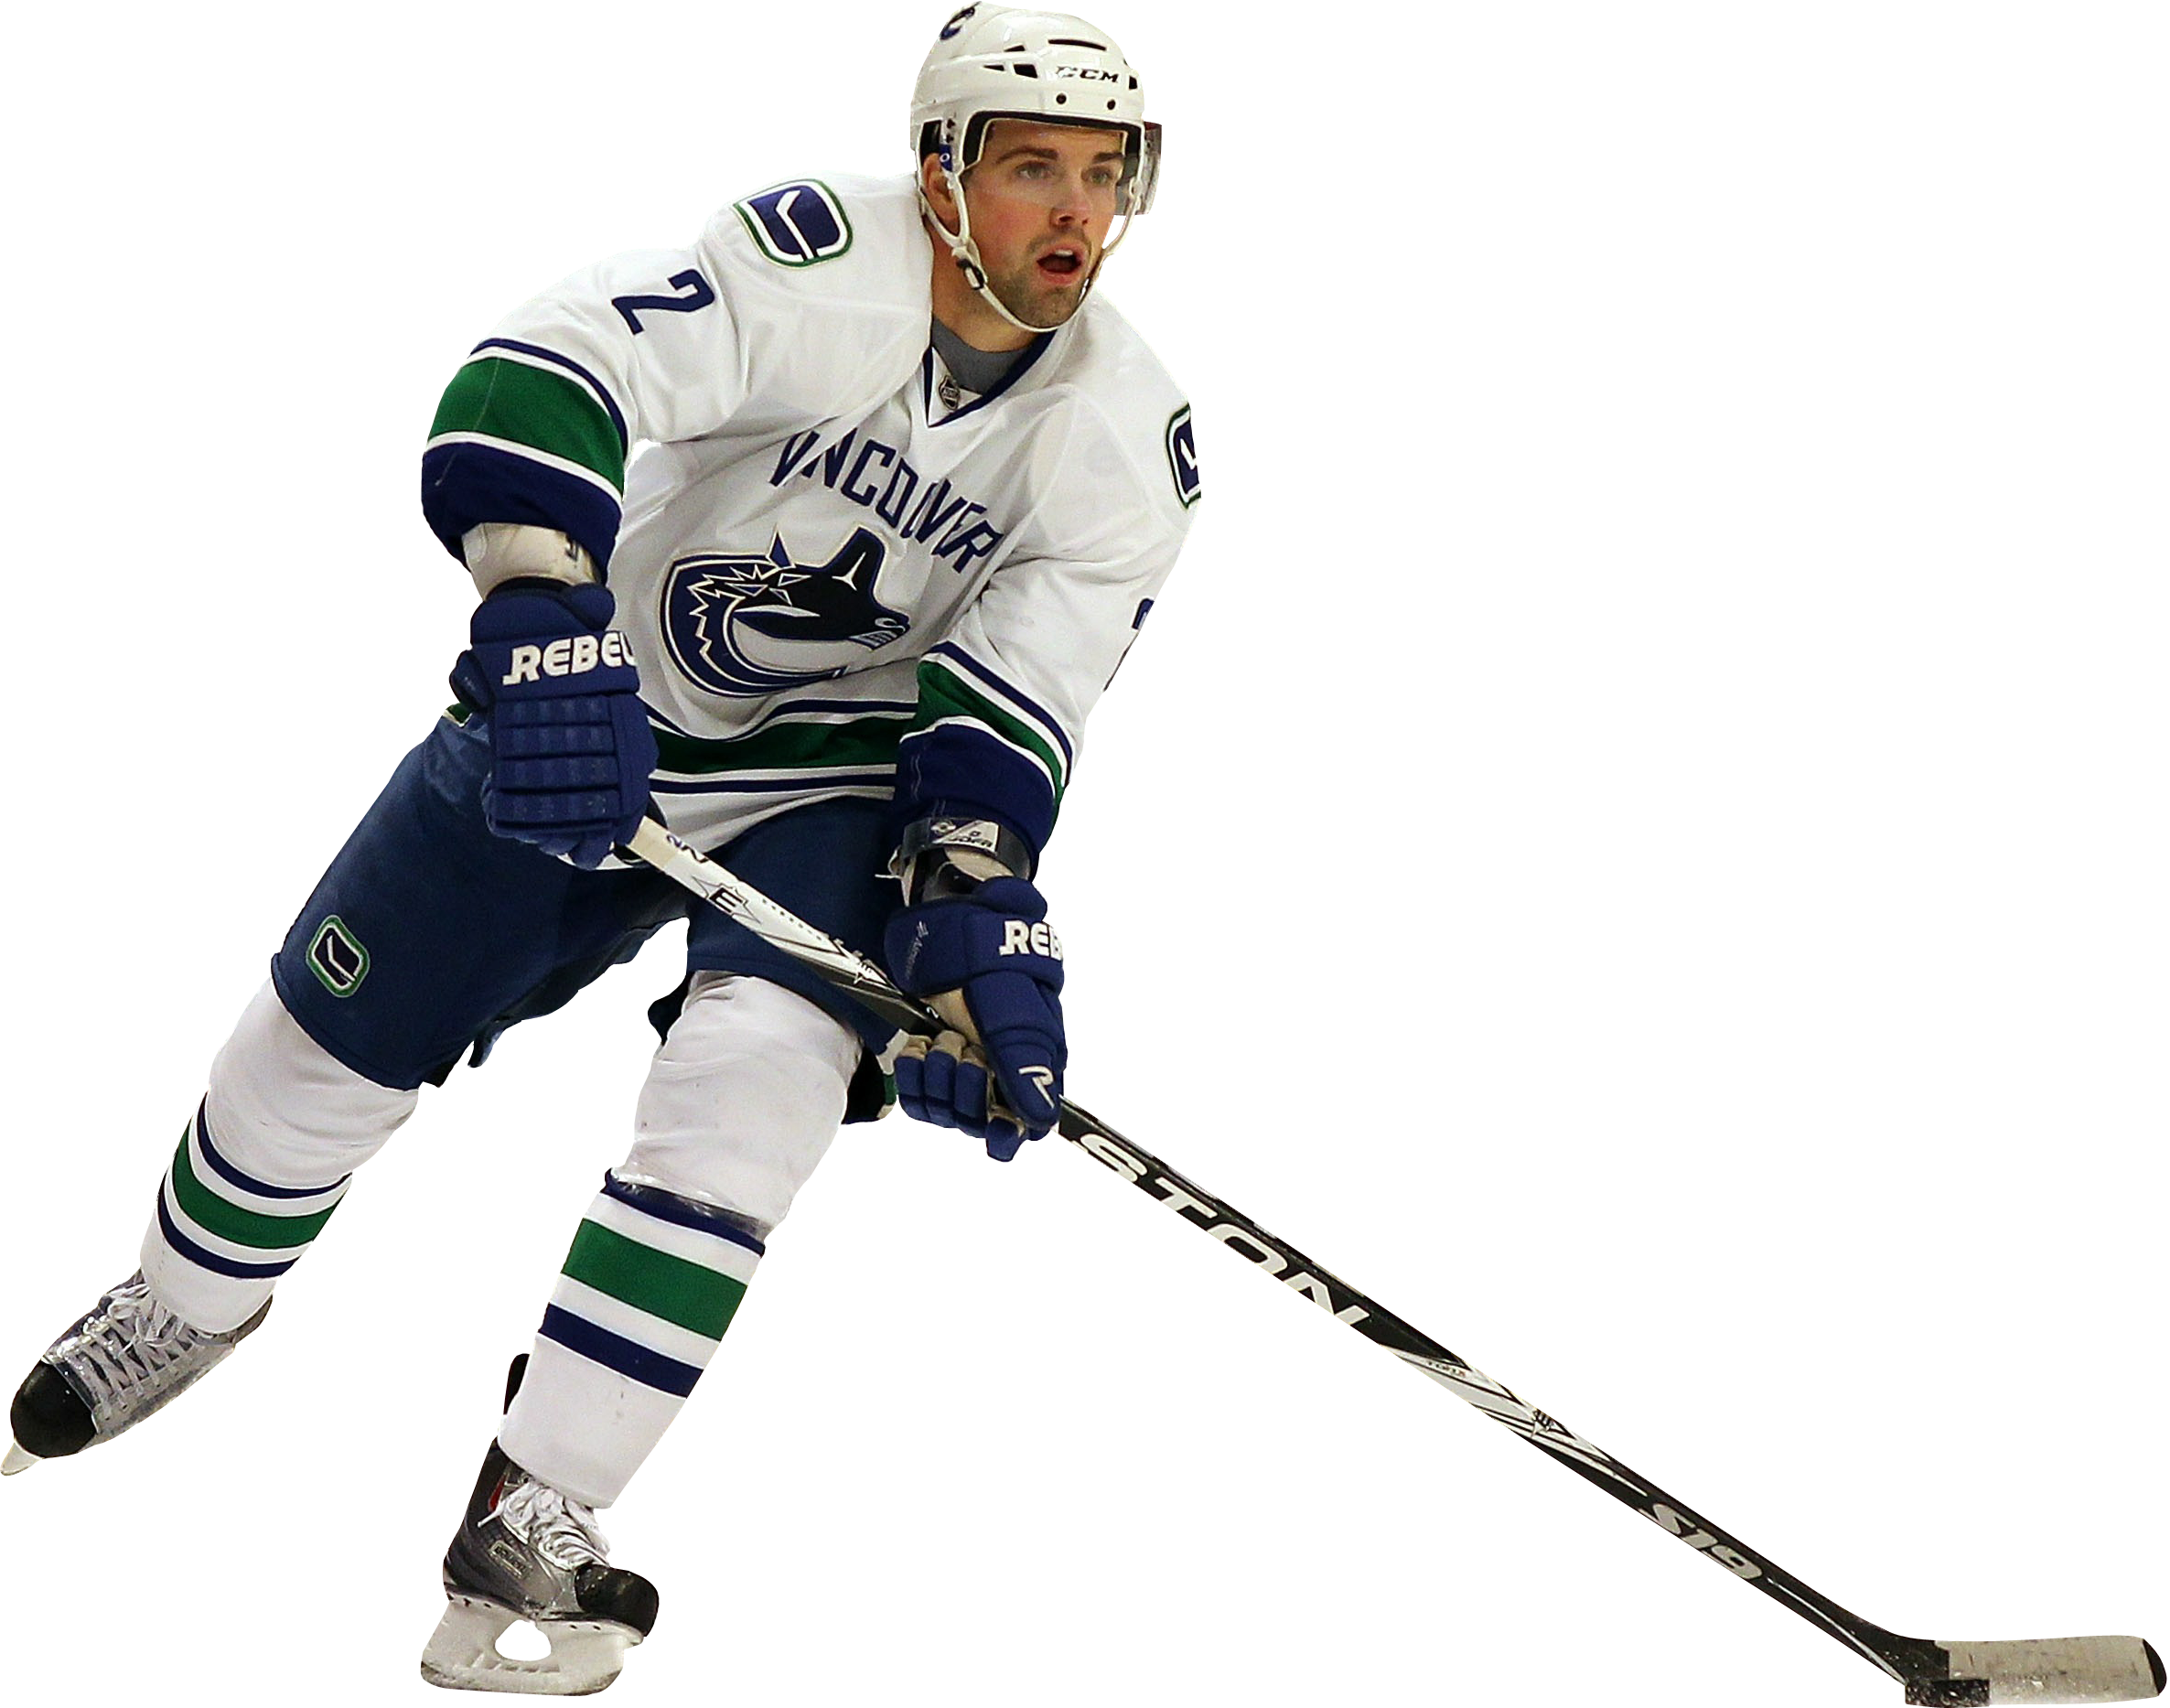 Hockey Player PNG Image